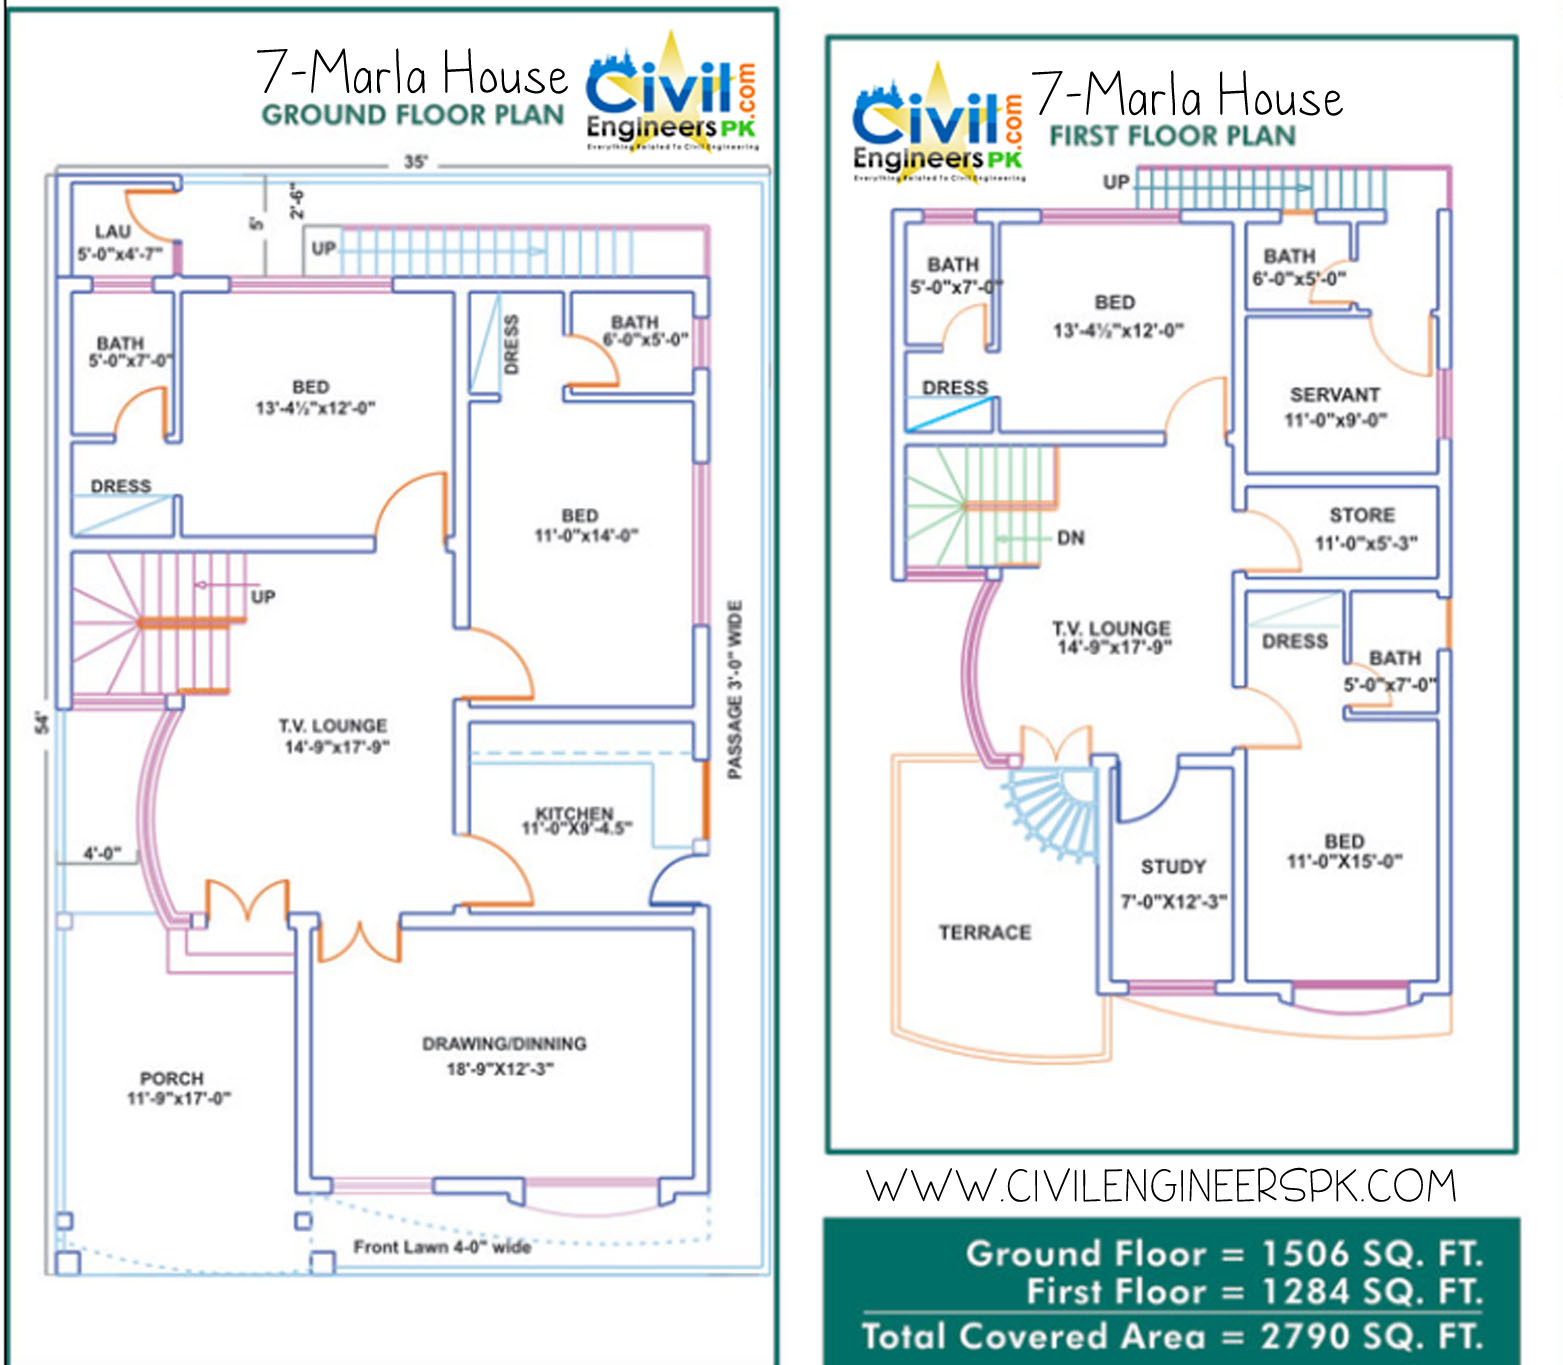 7 marla house plans civil engineers pk for Home plans 3d designs